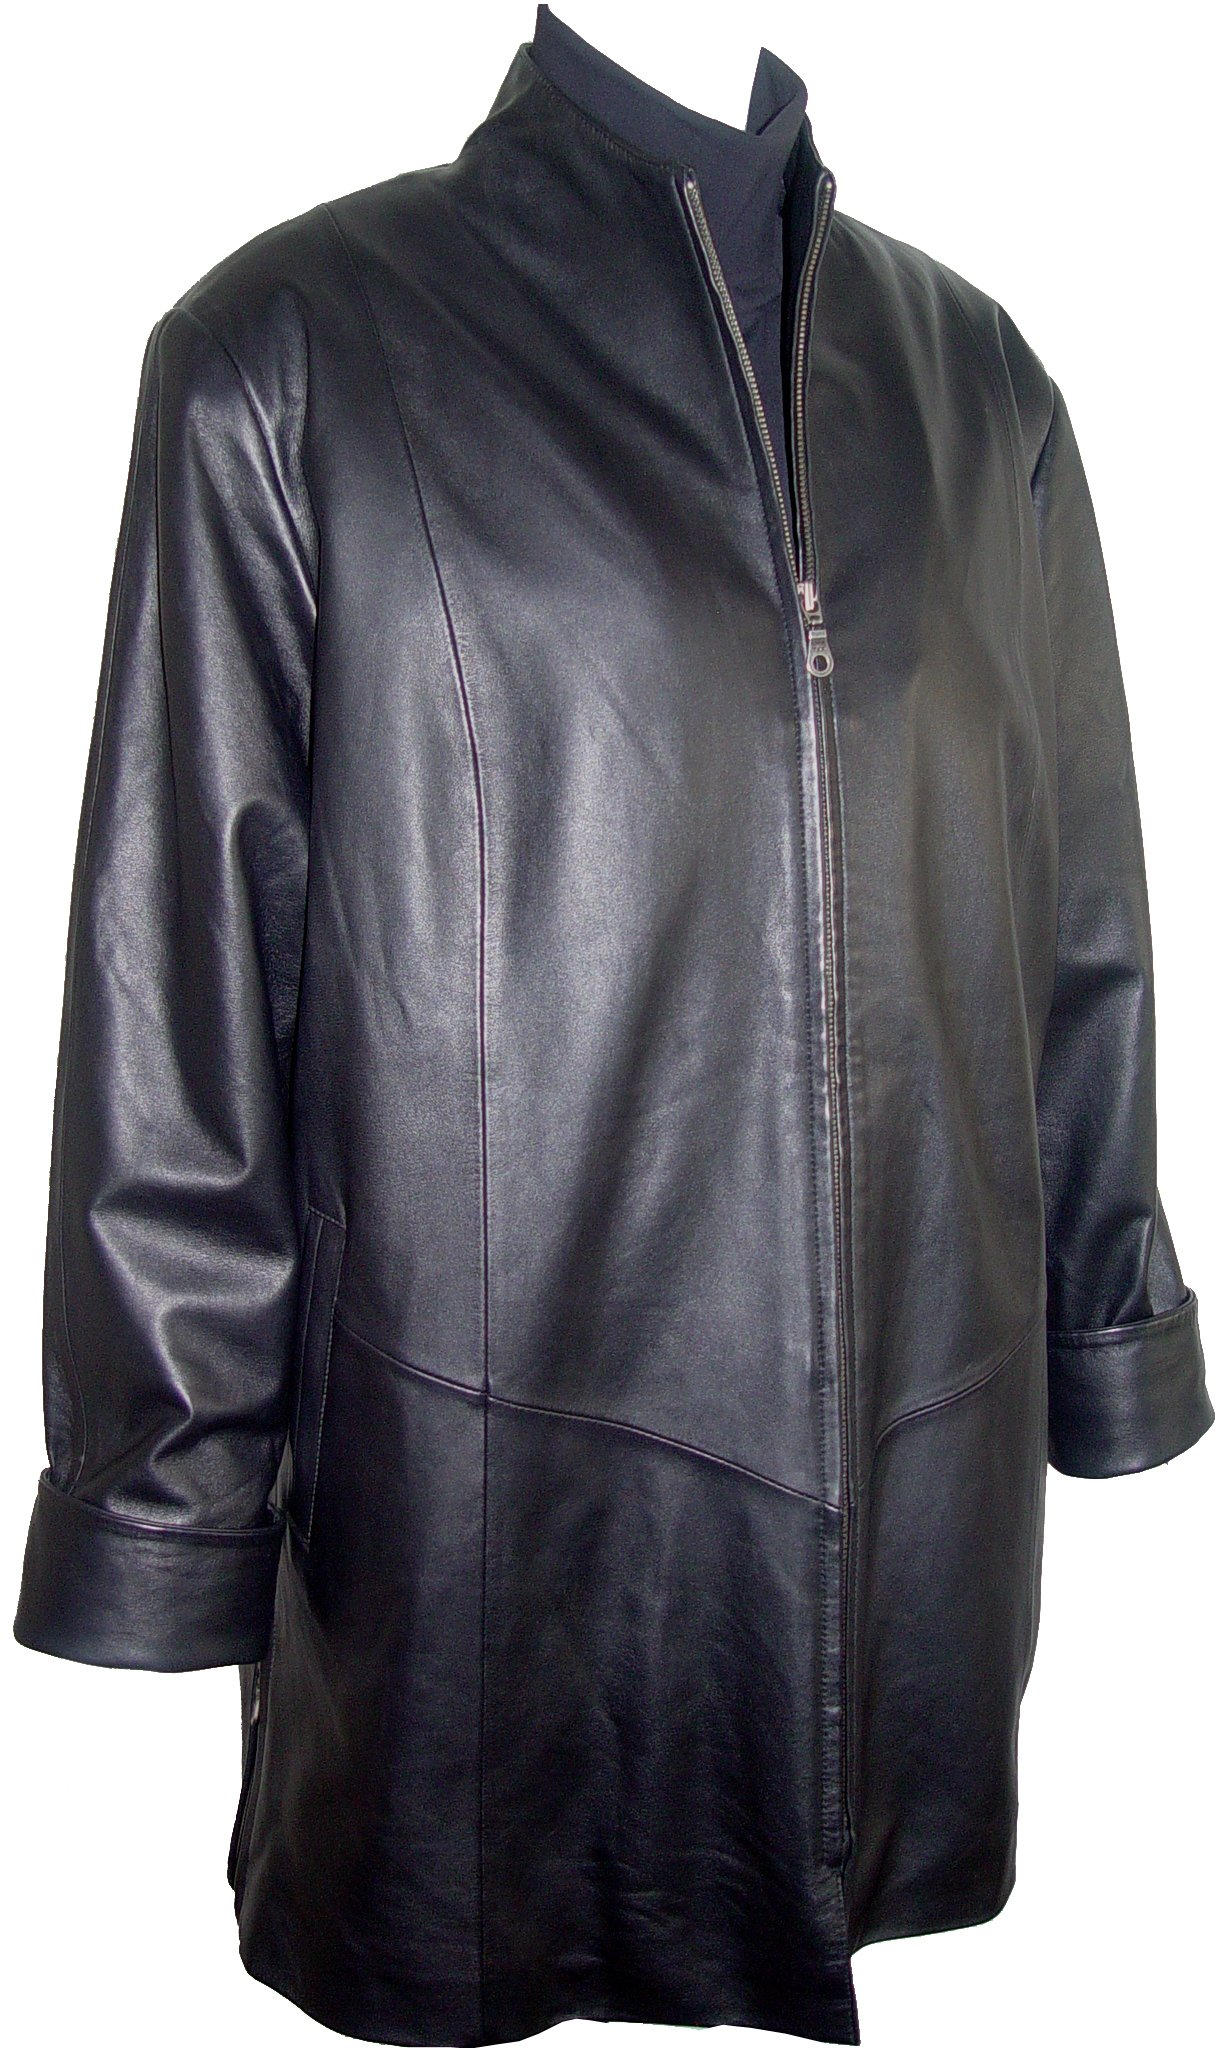 Johnny 5001 Female Leather Jacket & Coats Fashion Soft Lamb